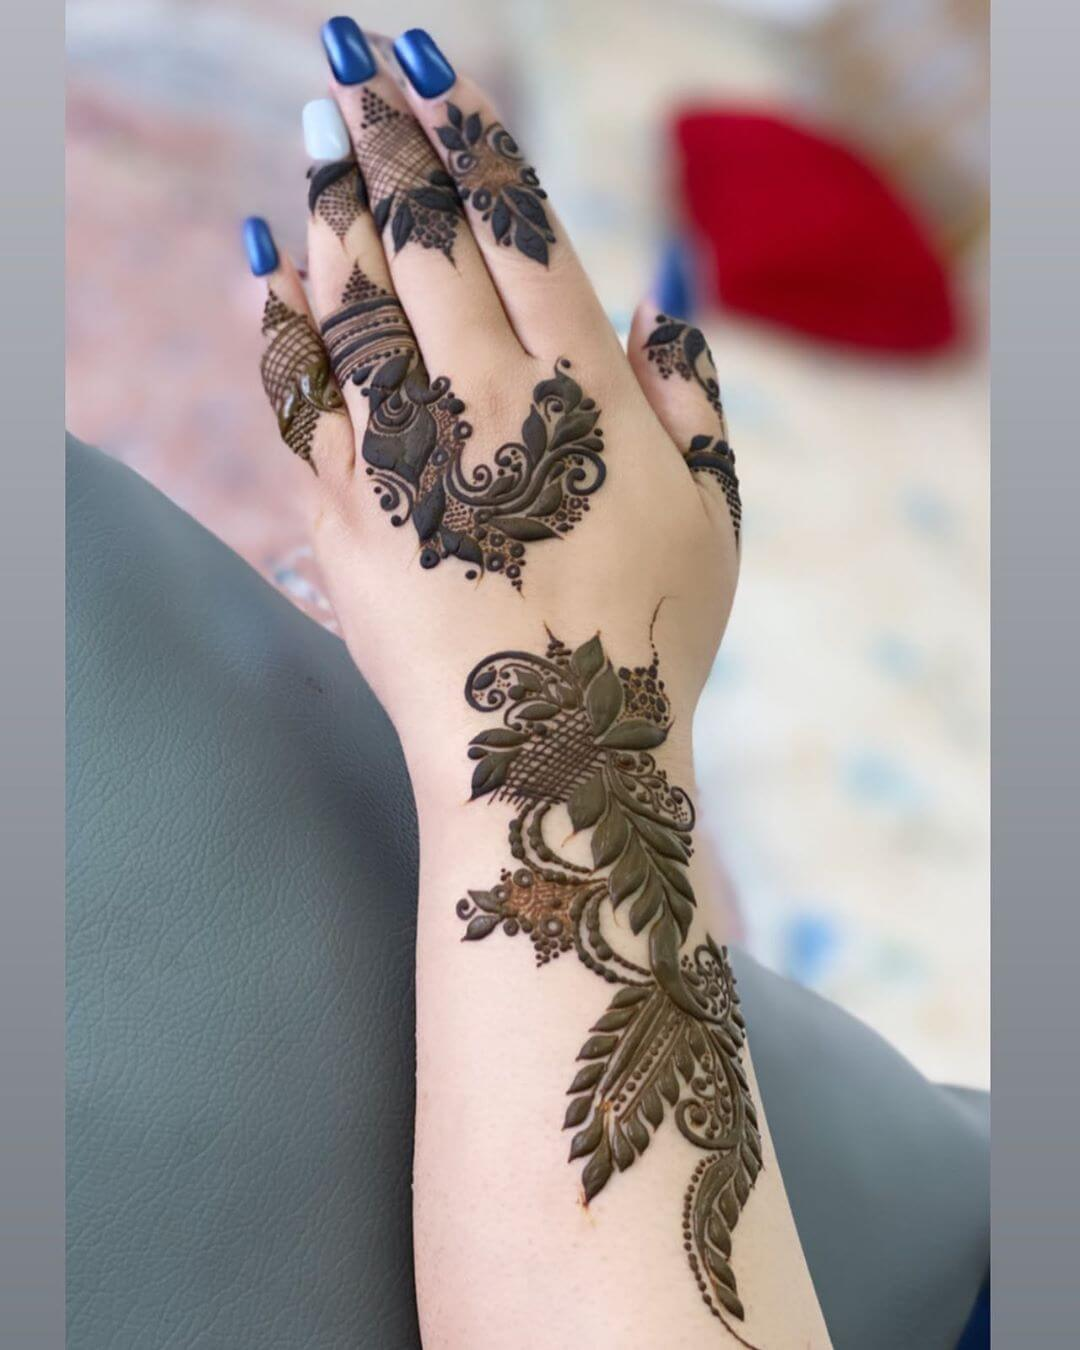 Vines and Mesh mehndi designs for back hands